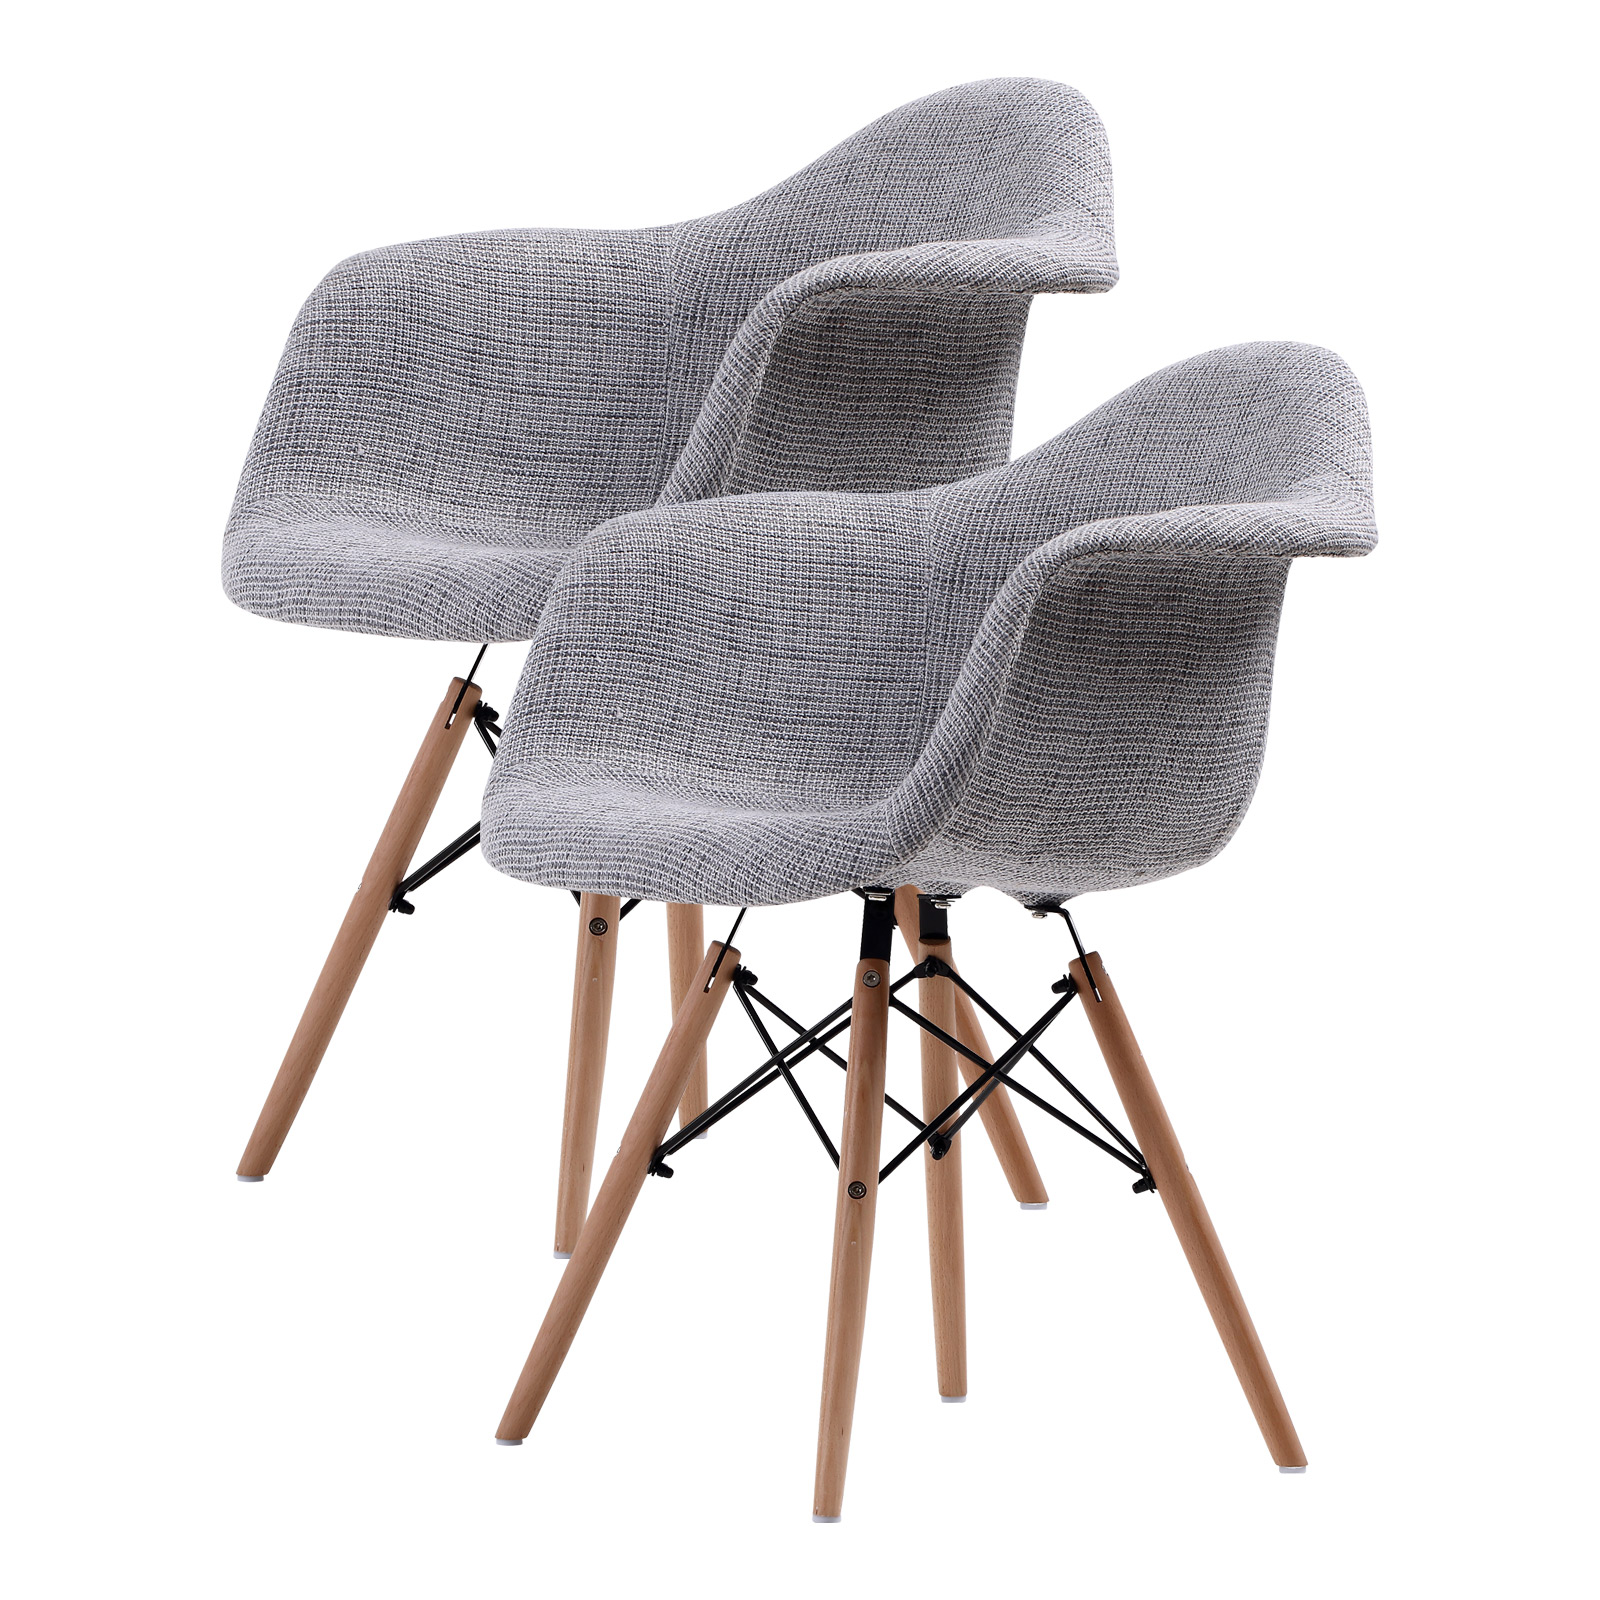 fishing chair crane chinese rosewood dining table and chairs replica eames daw armchair grey x2 la bella